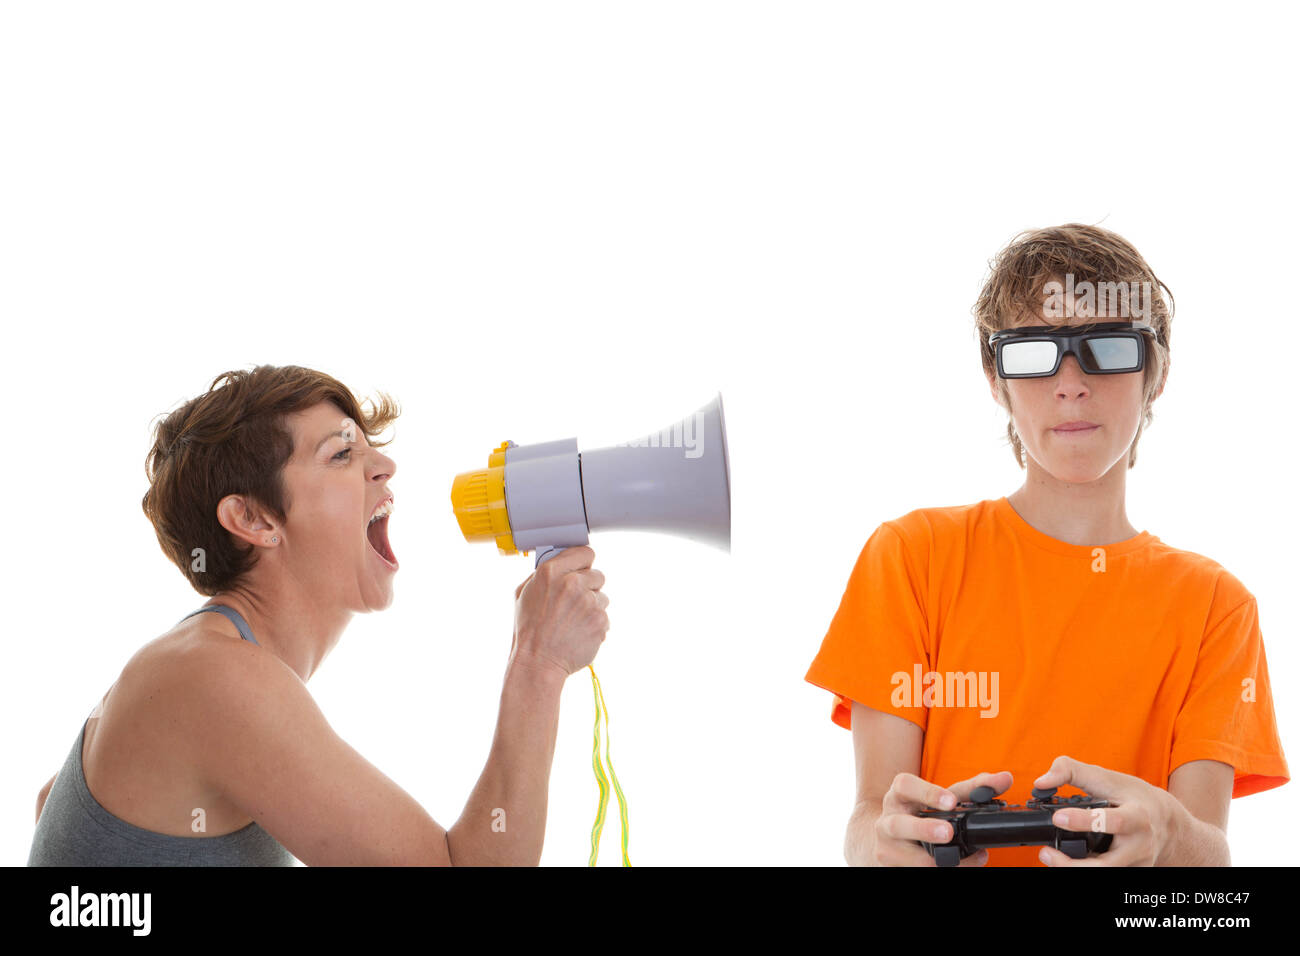 angry mother of teen playing computer games - Stock Image